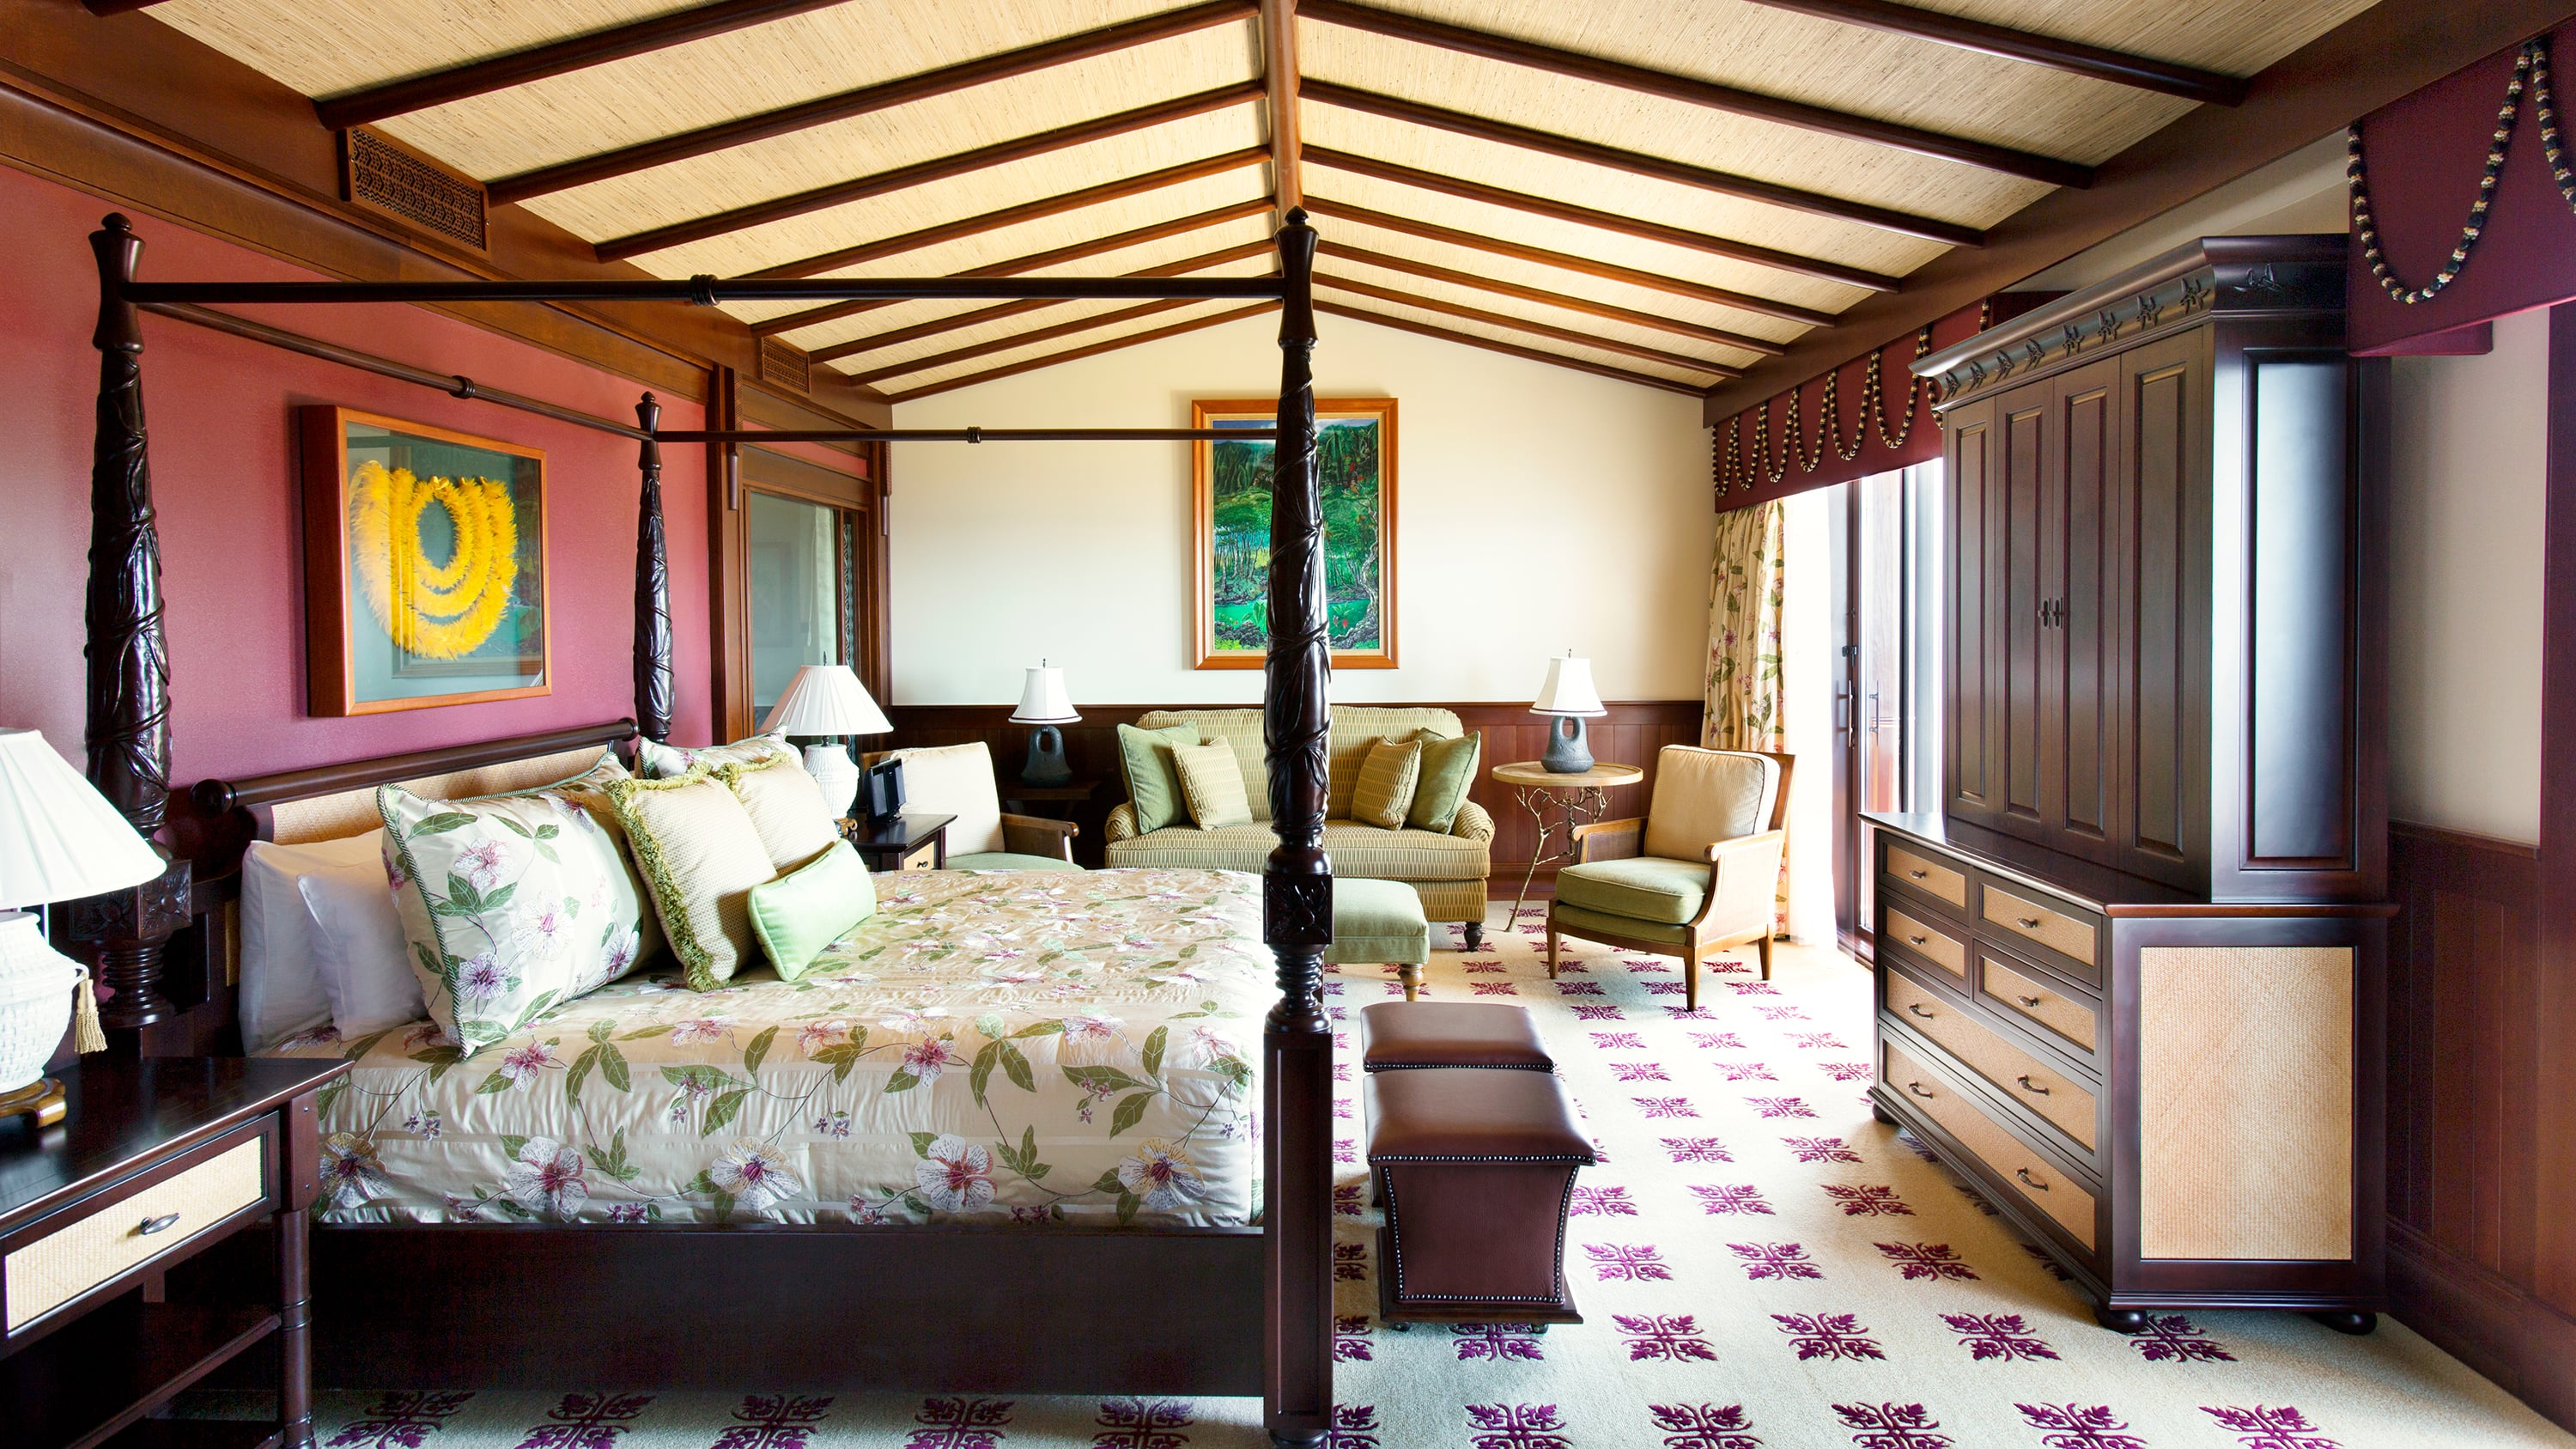 A room with a four poster bed, 4 lamps, 2 chairs, a couch and an armoire